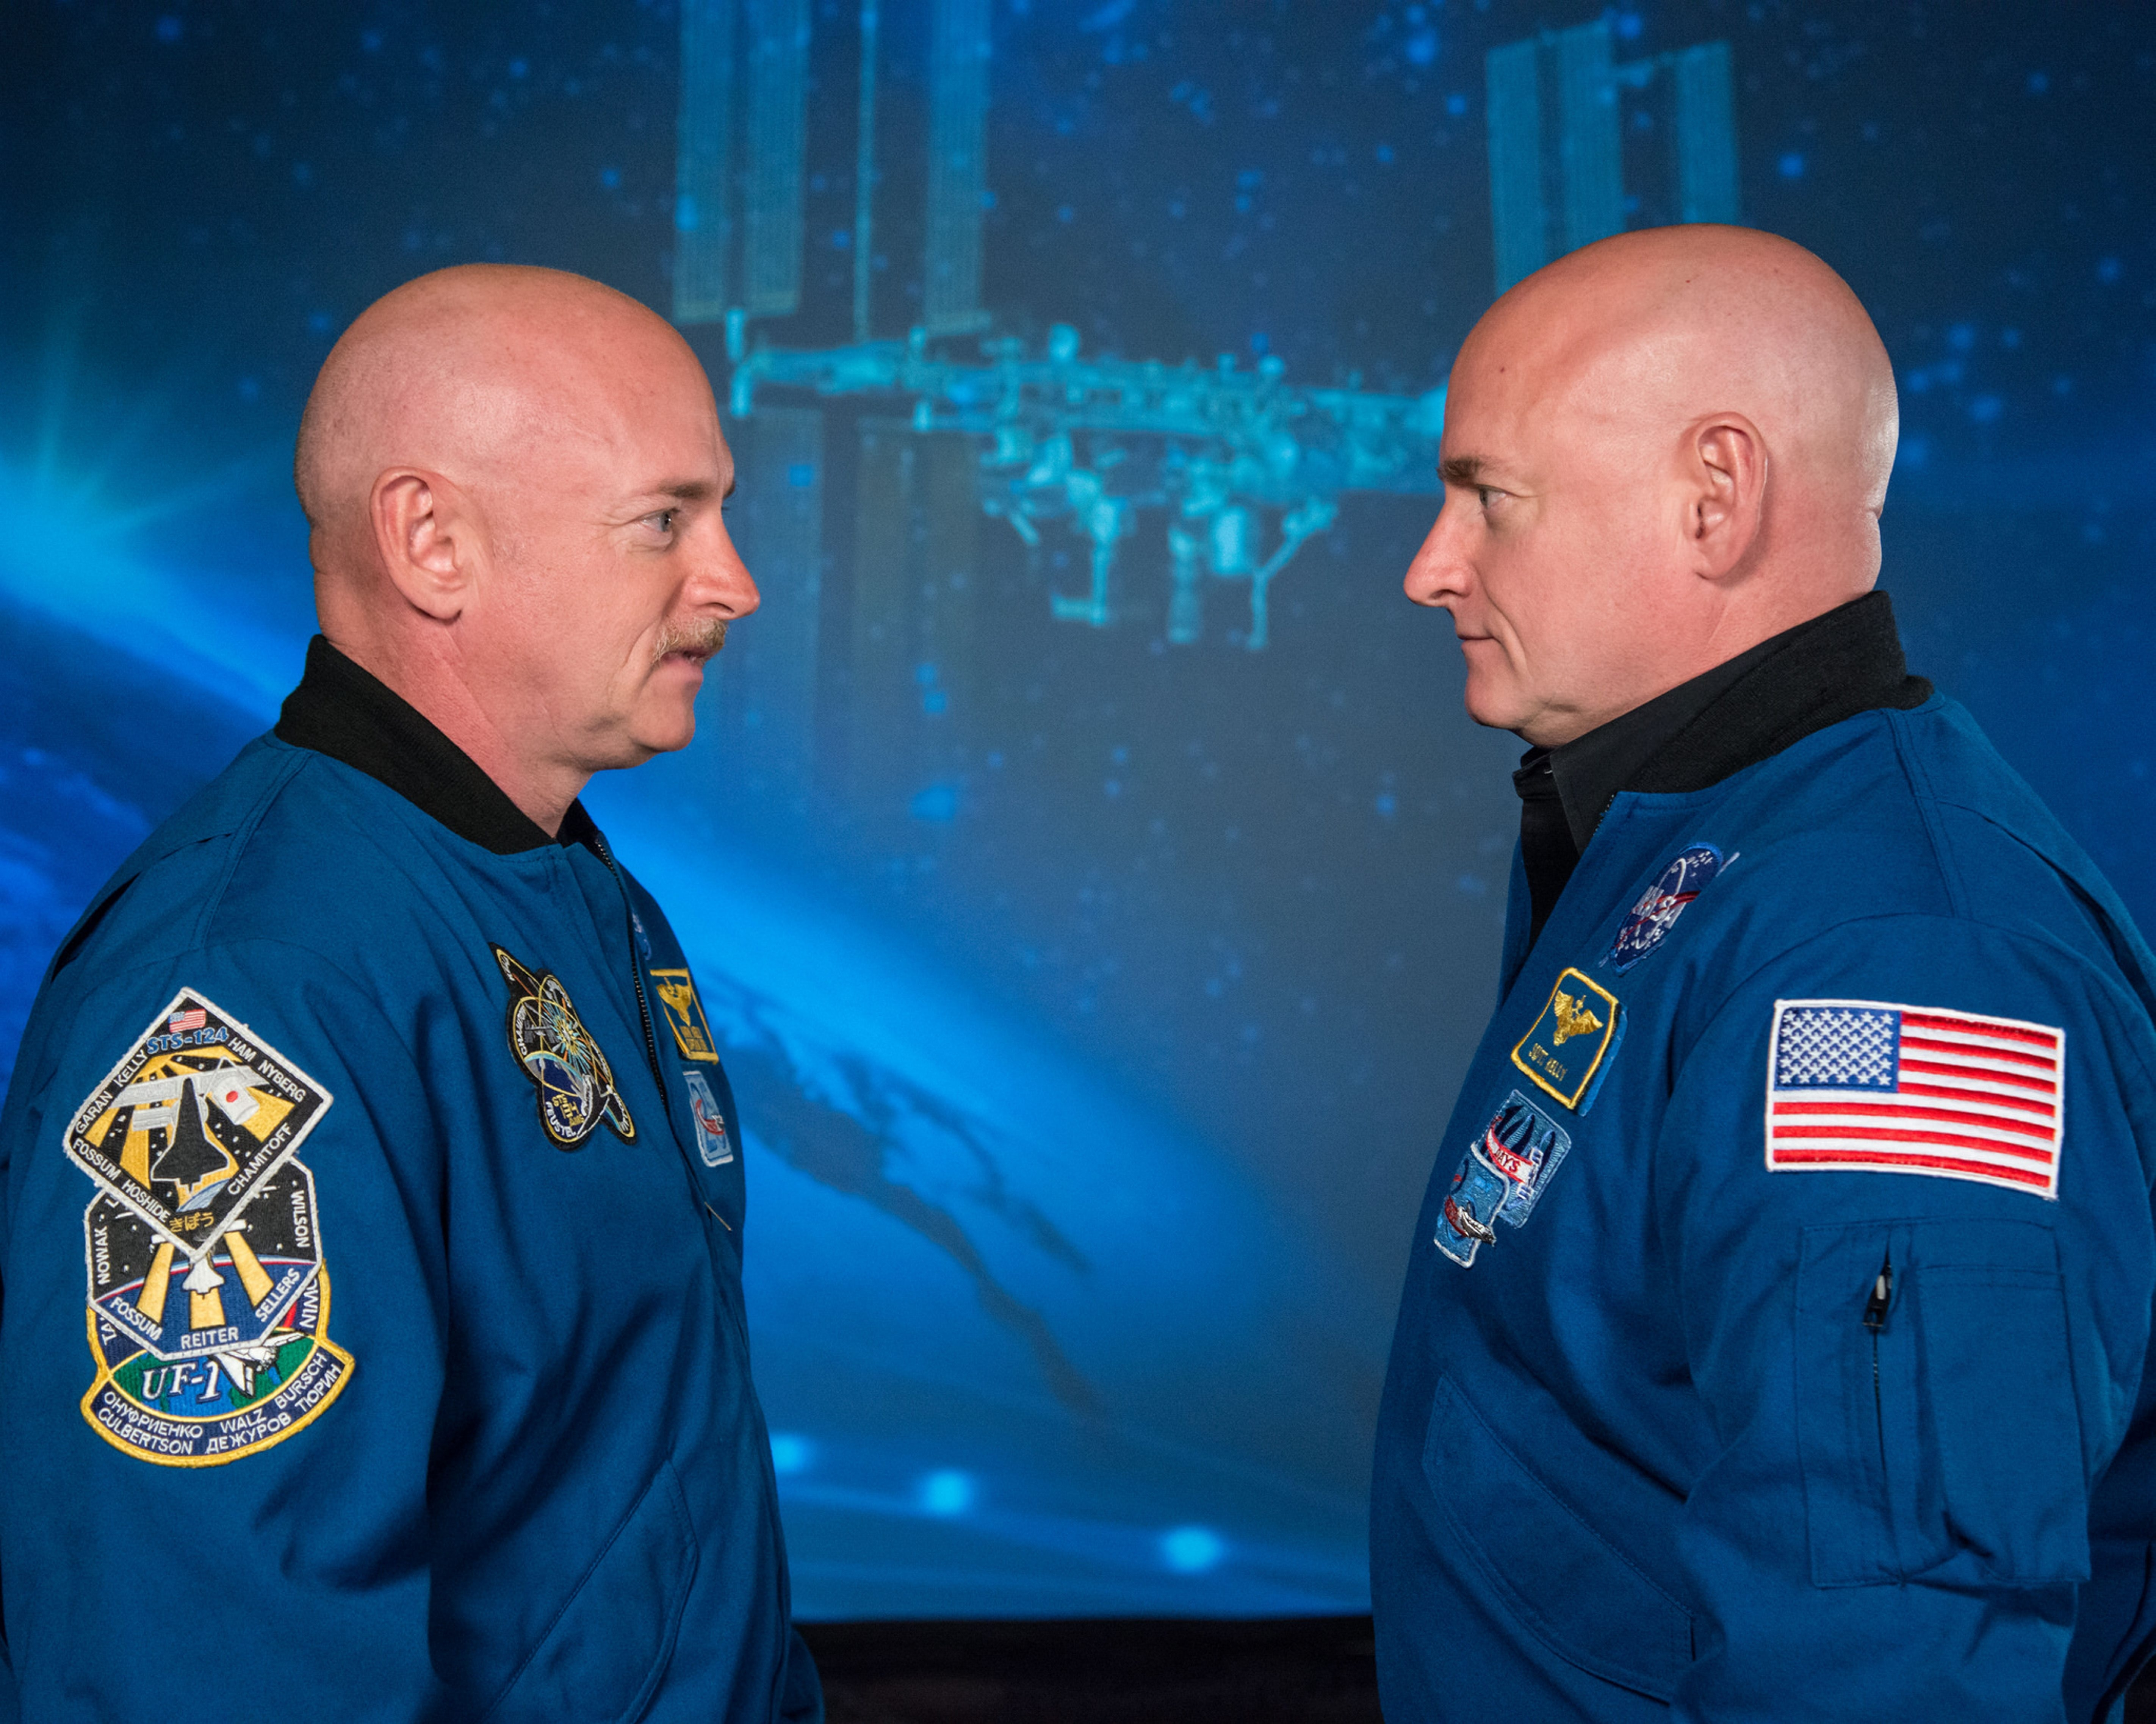 NASA is studying the effects of space on the human body through twin astronauts Mark Kelly, left, and Scott Kelly. (NASA)